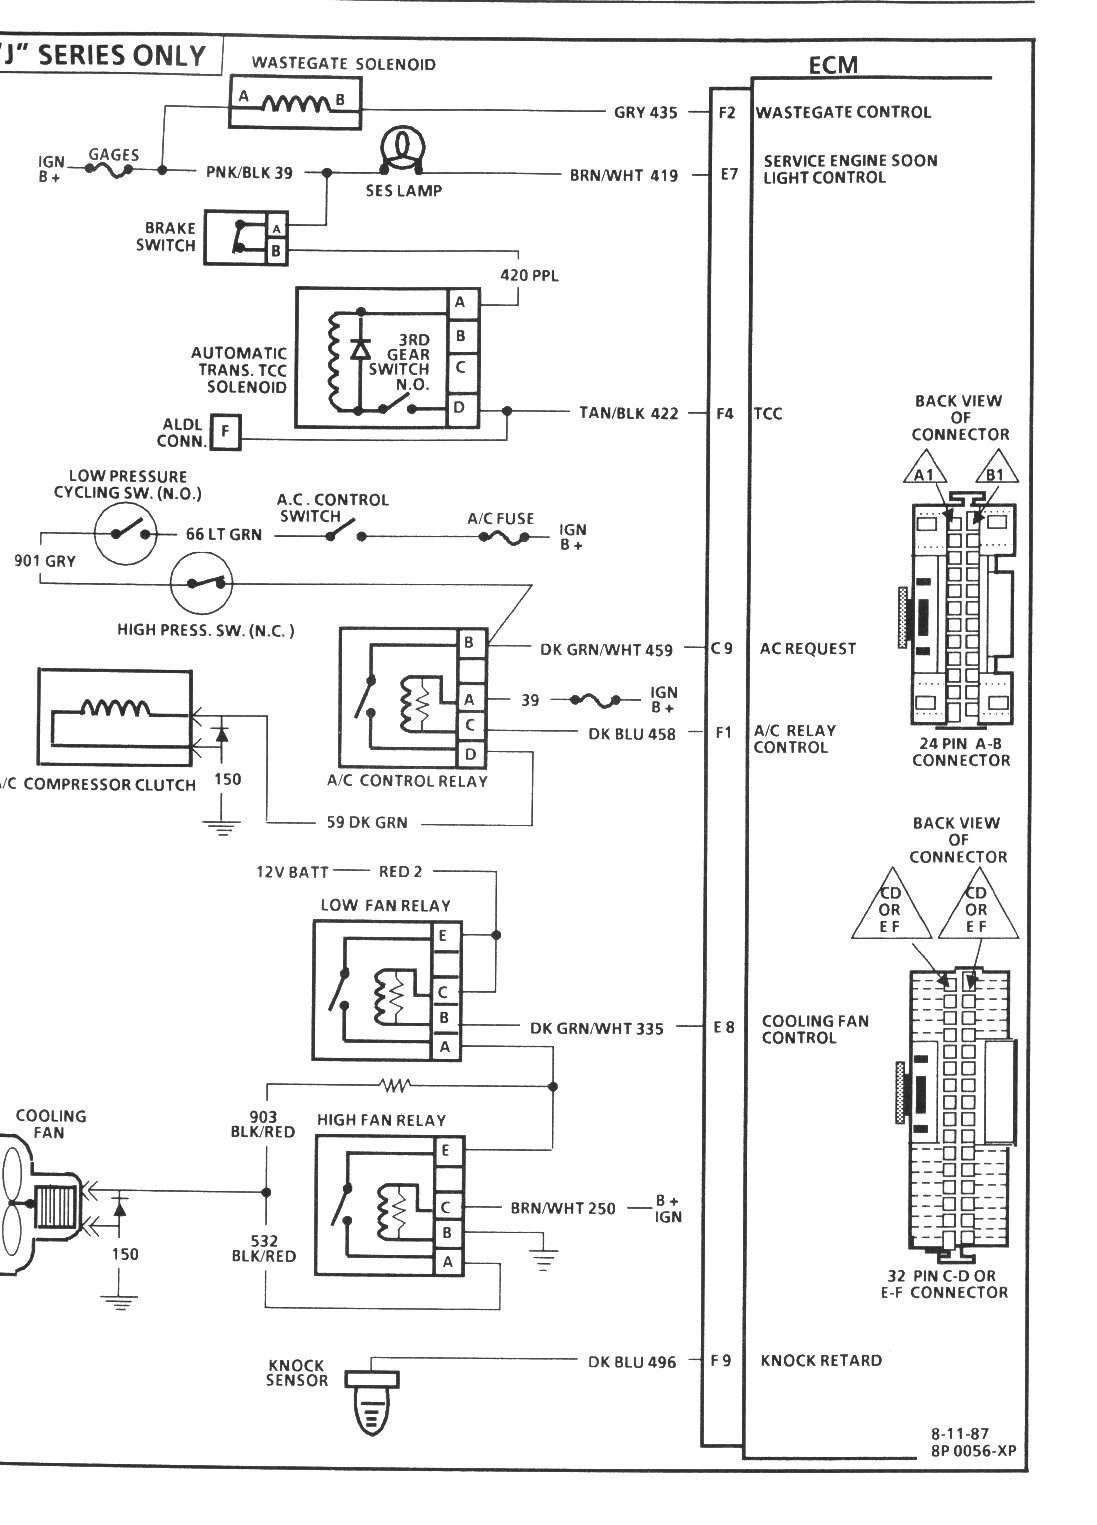 749sunbird3 nwstp forum ddec 4 ecm wiring diagram at cos-gaming.co